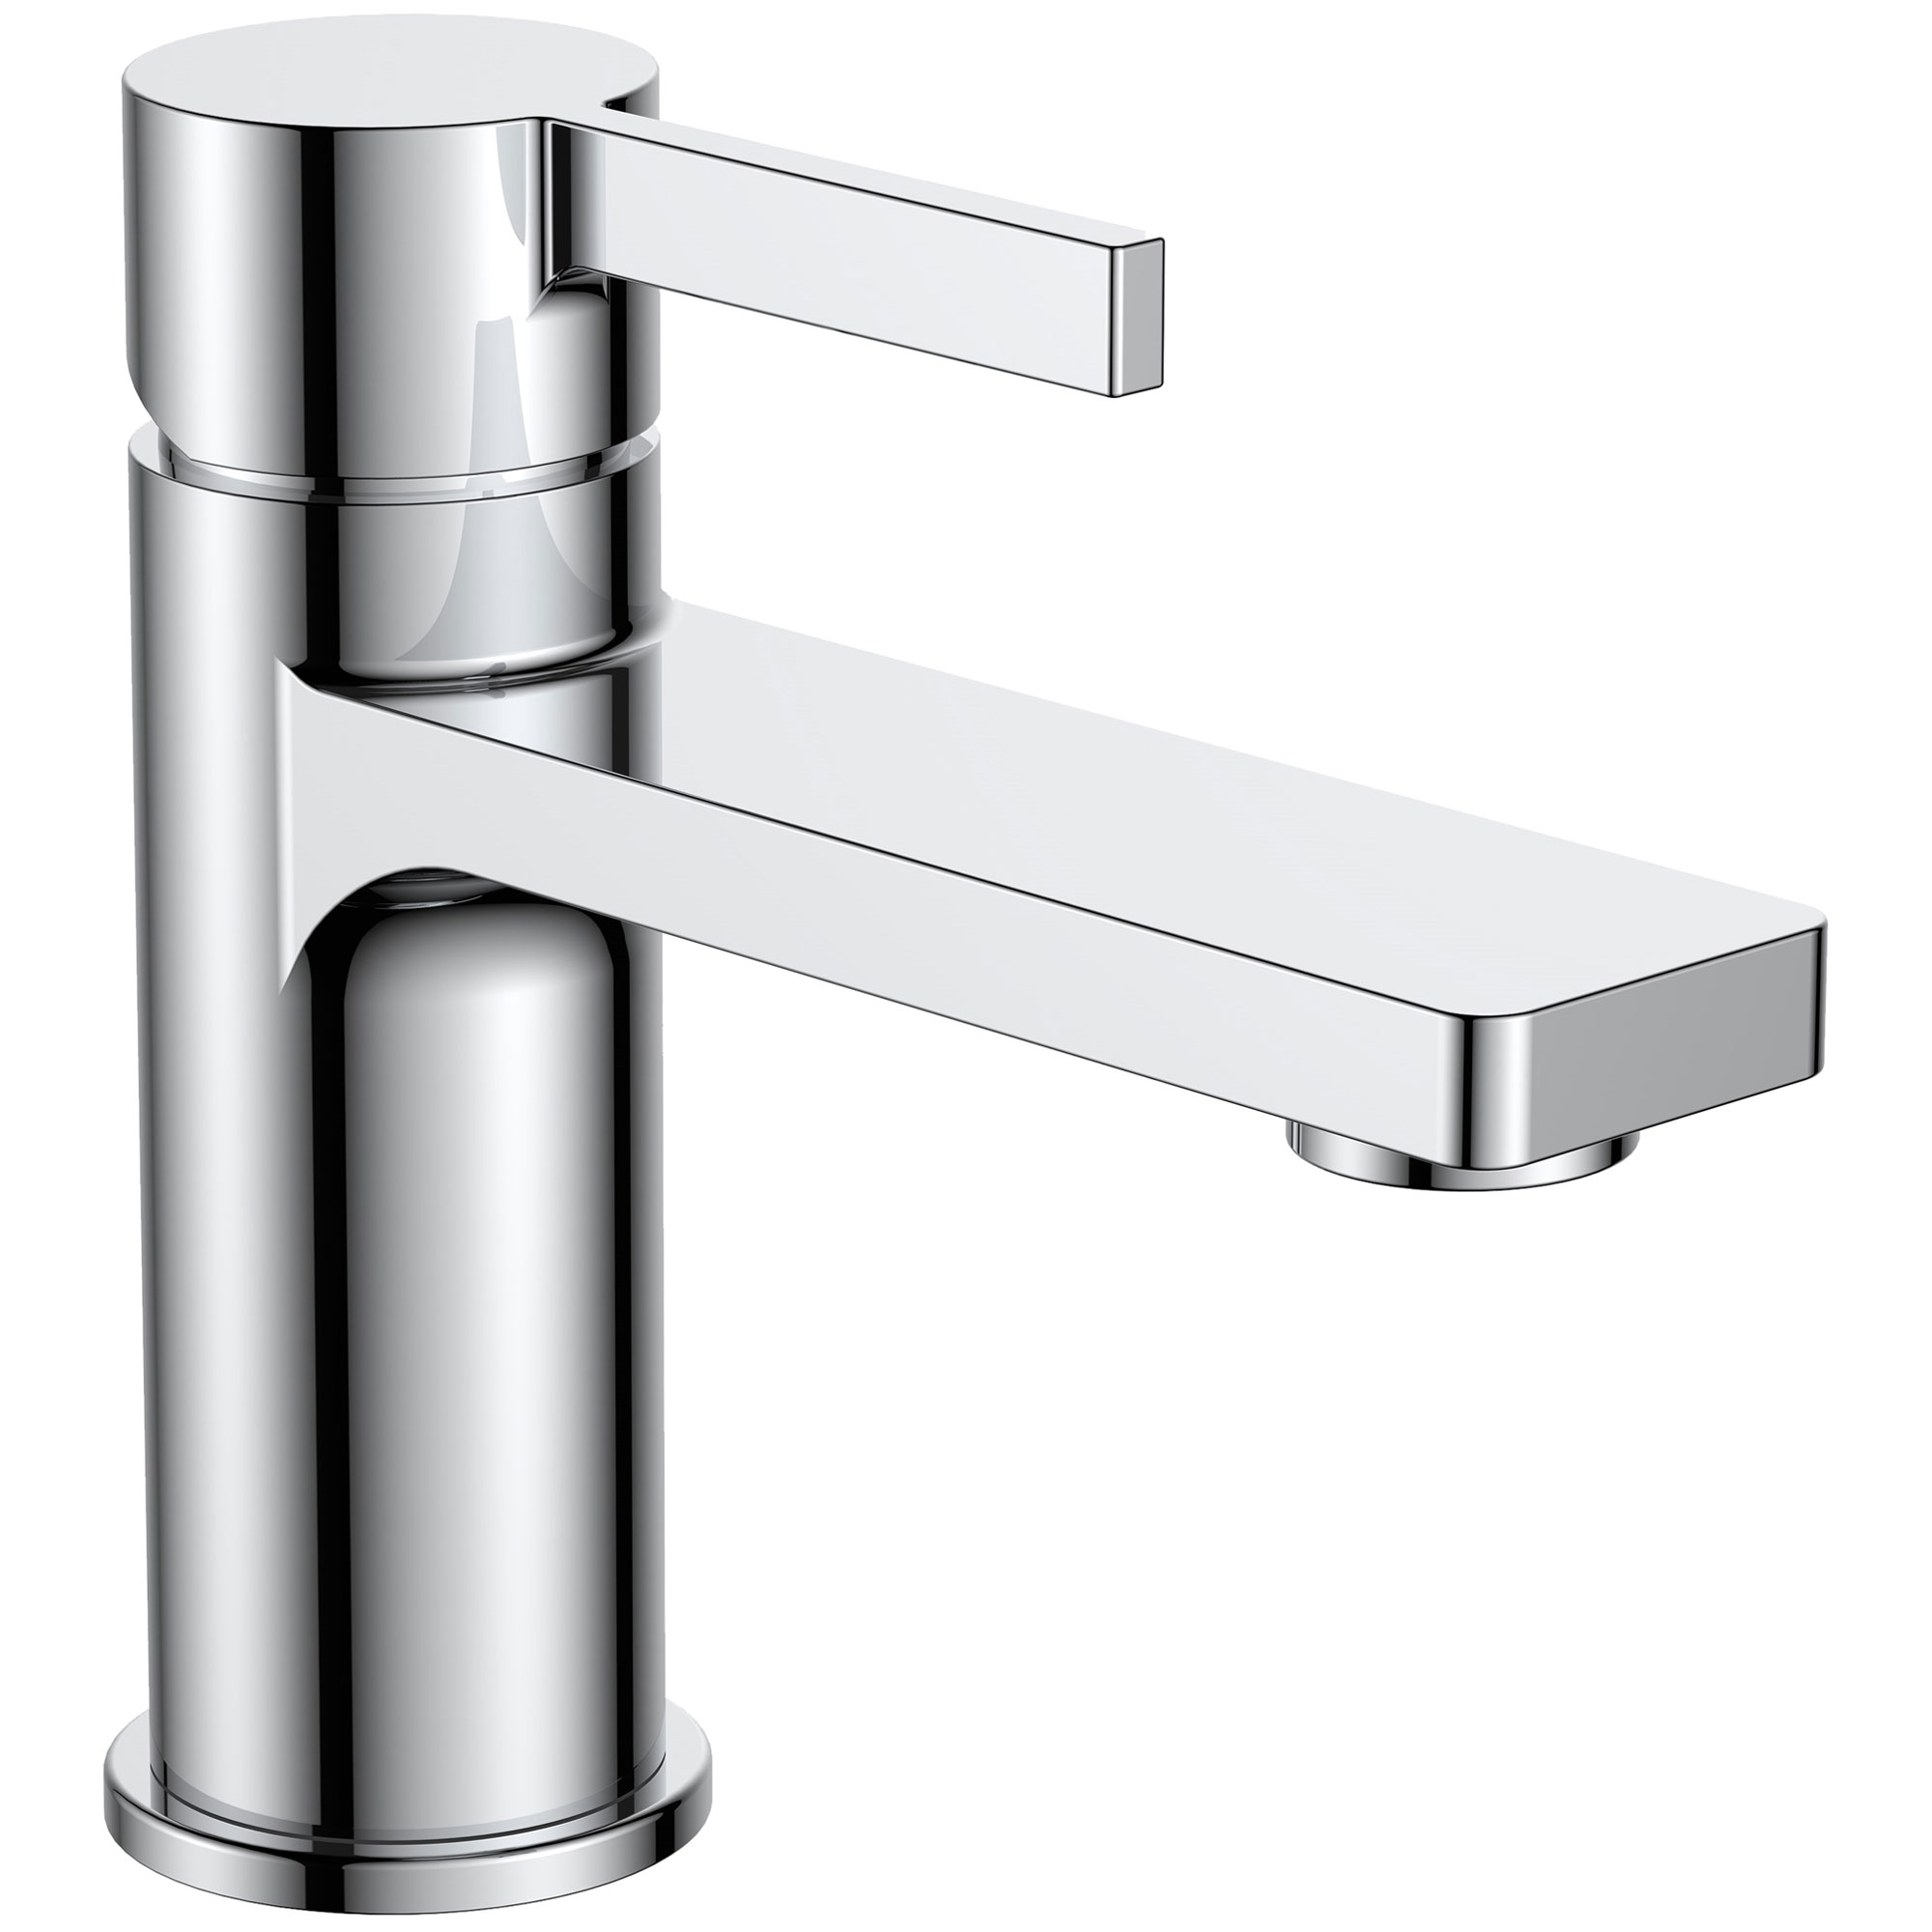 JTP Hugo Basin Mixer Tap Single Handle - Chrome